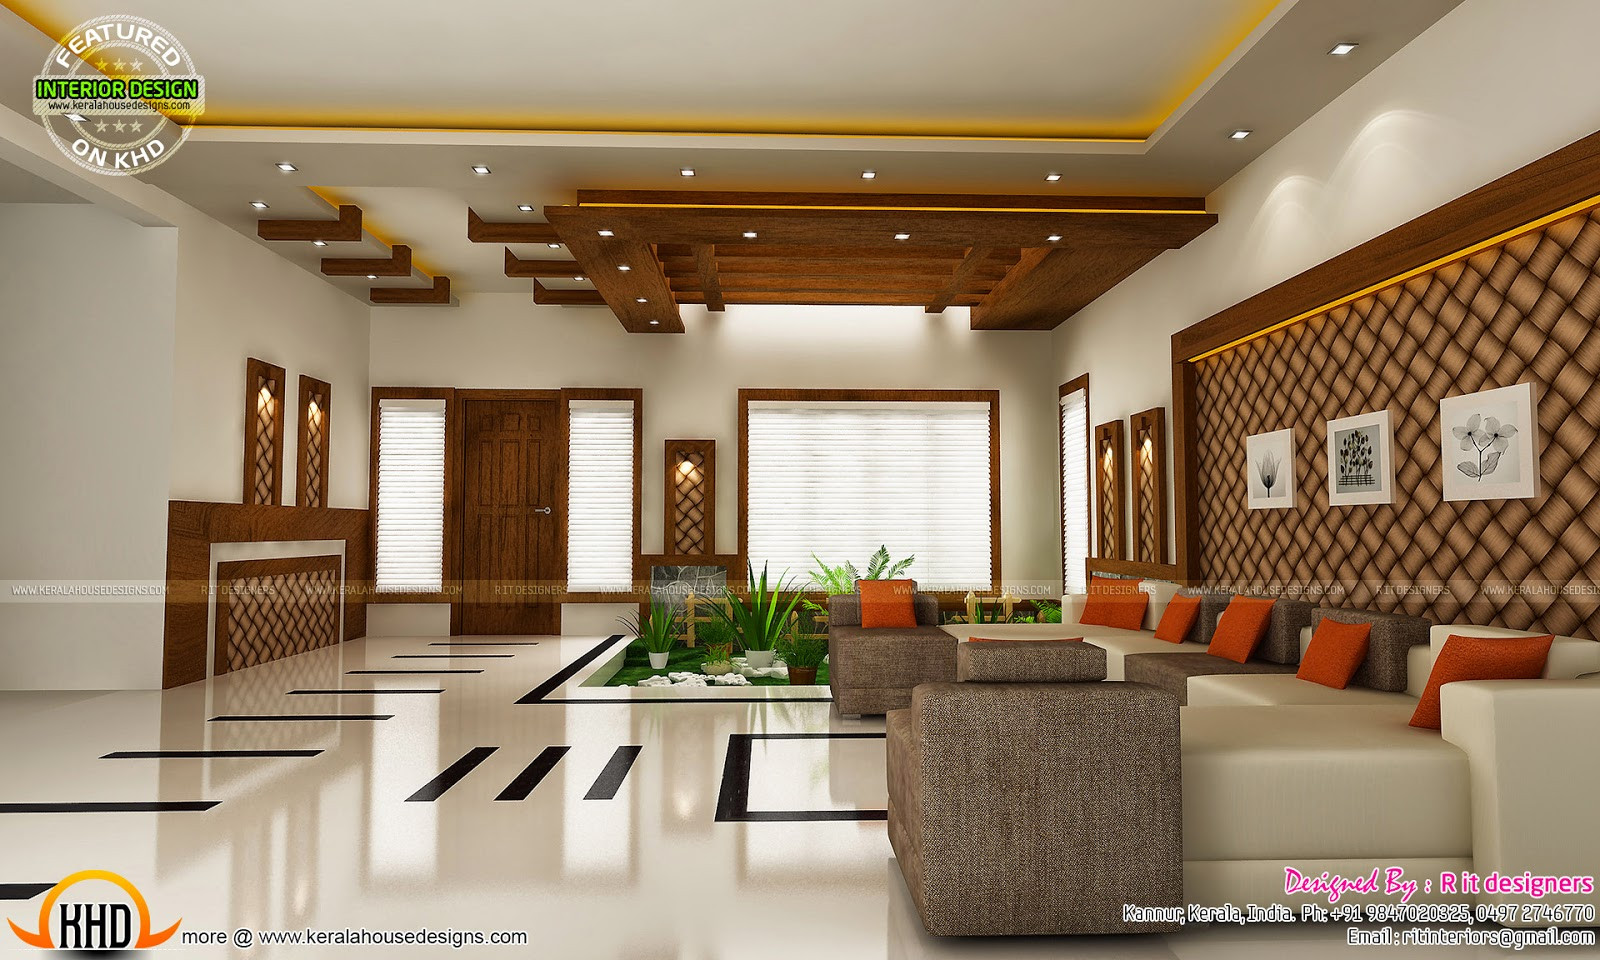 Modern and unique dining kitchen interior kerala home for Bathroom interior design kerala